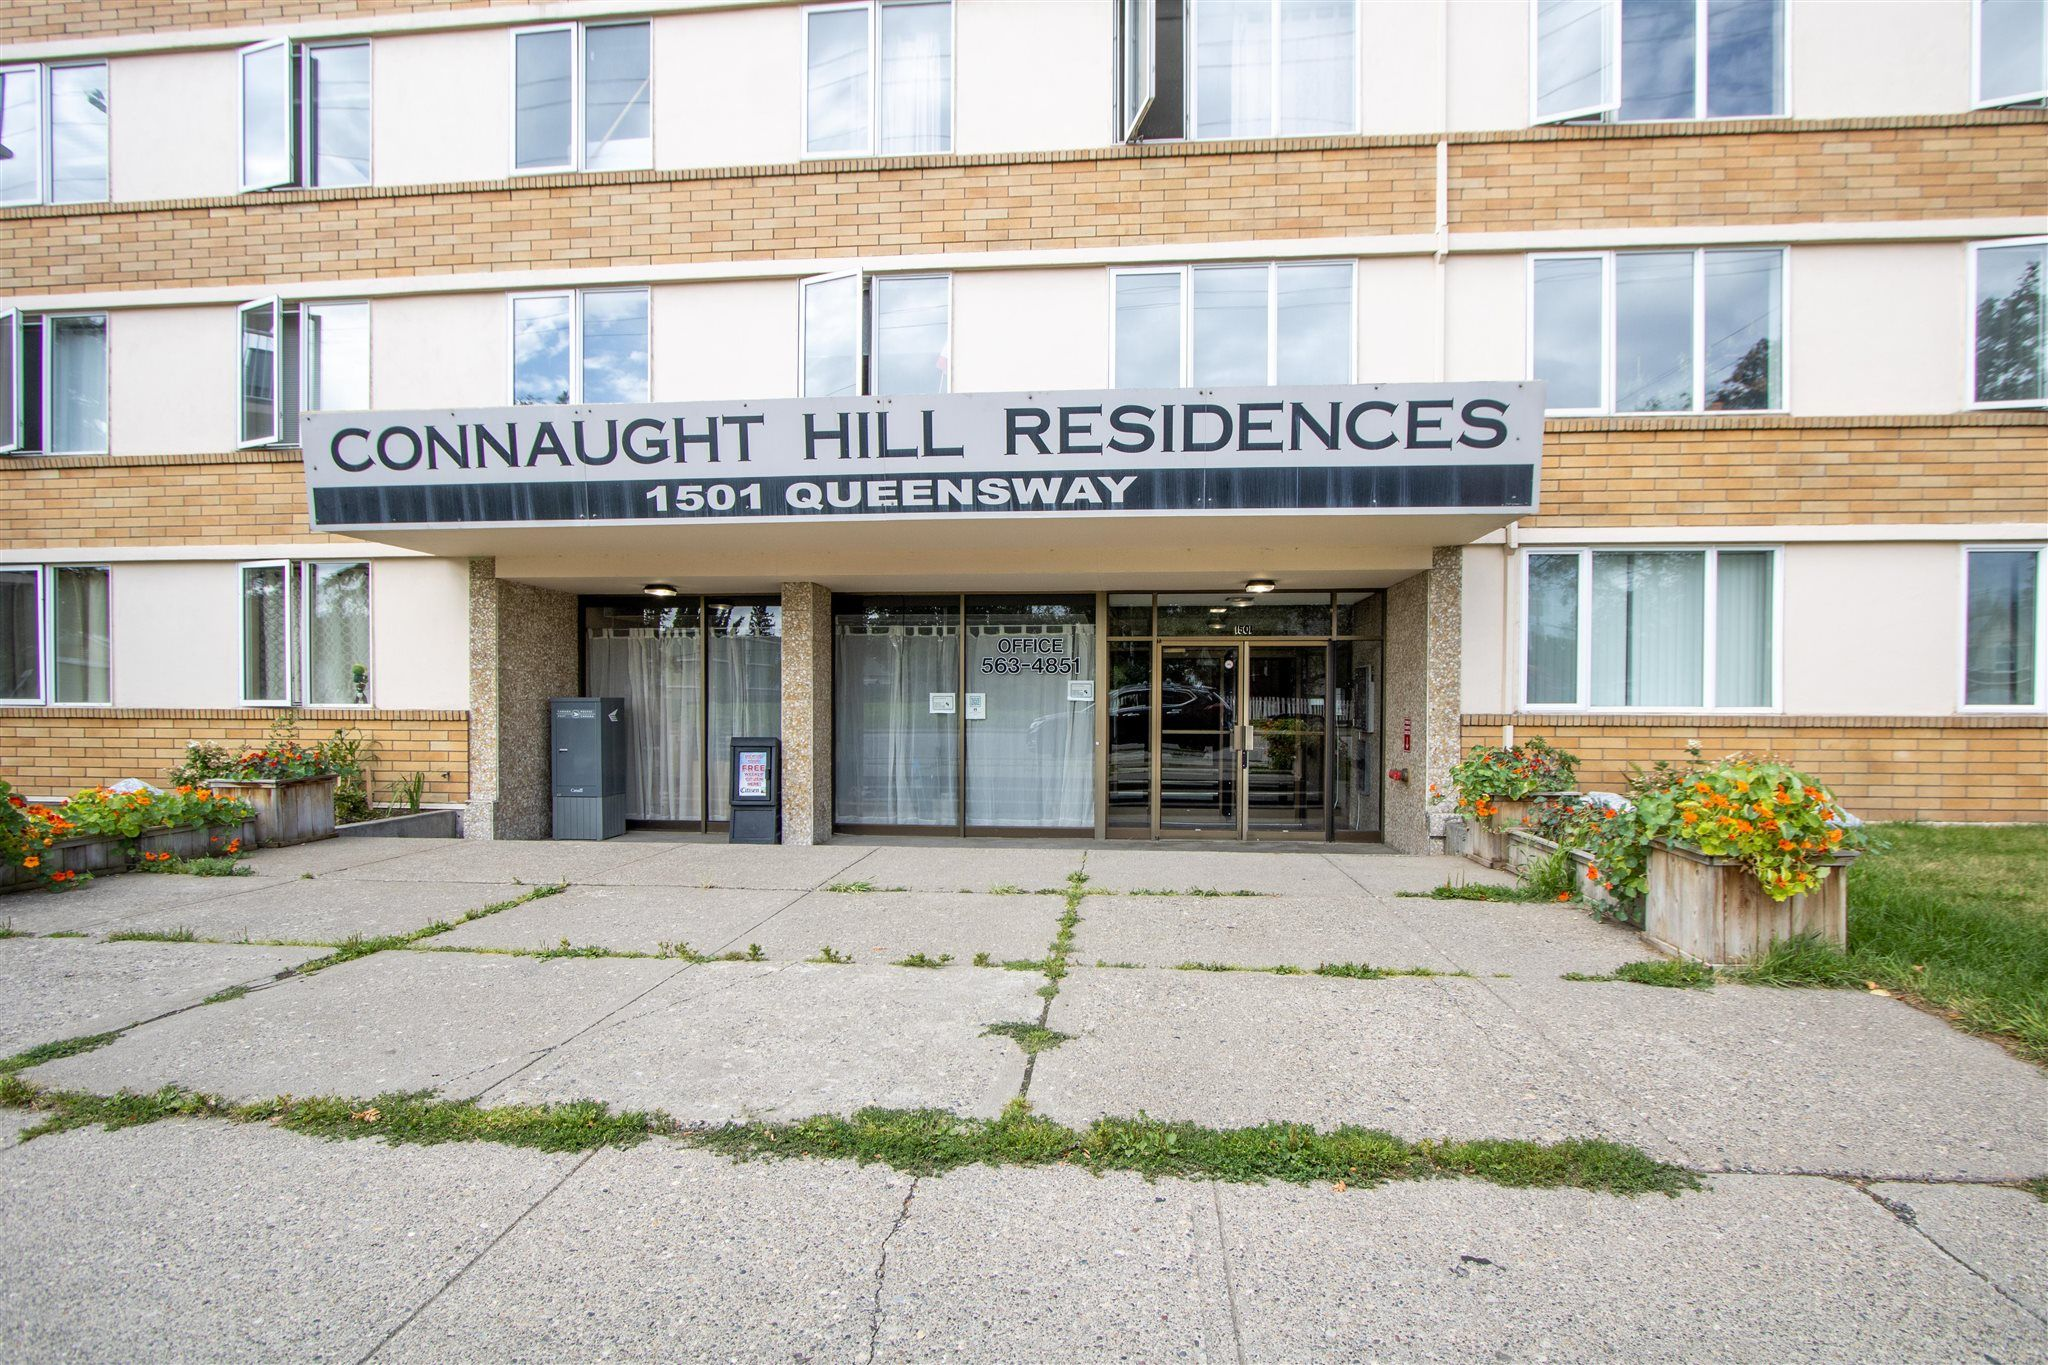 """Main Photo: 1201 1501 QUEENSWAY Boulevard in Prince George: Connaught Condo for sale in """"Connaught Hill Residences"""" (PG City Central (Zone 72))  : MLS®# R2608626"""